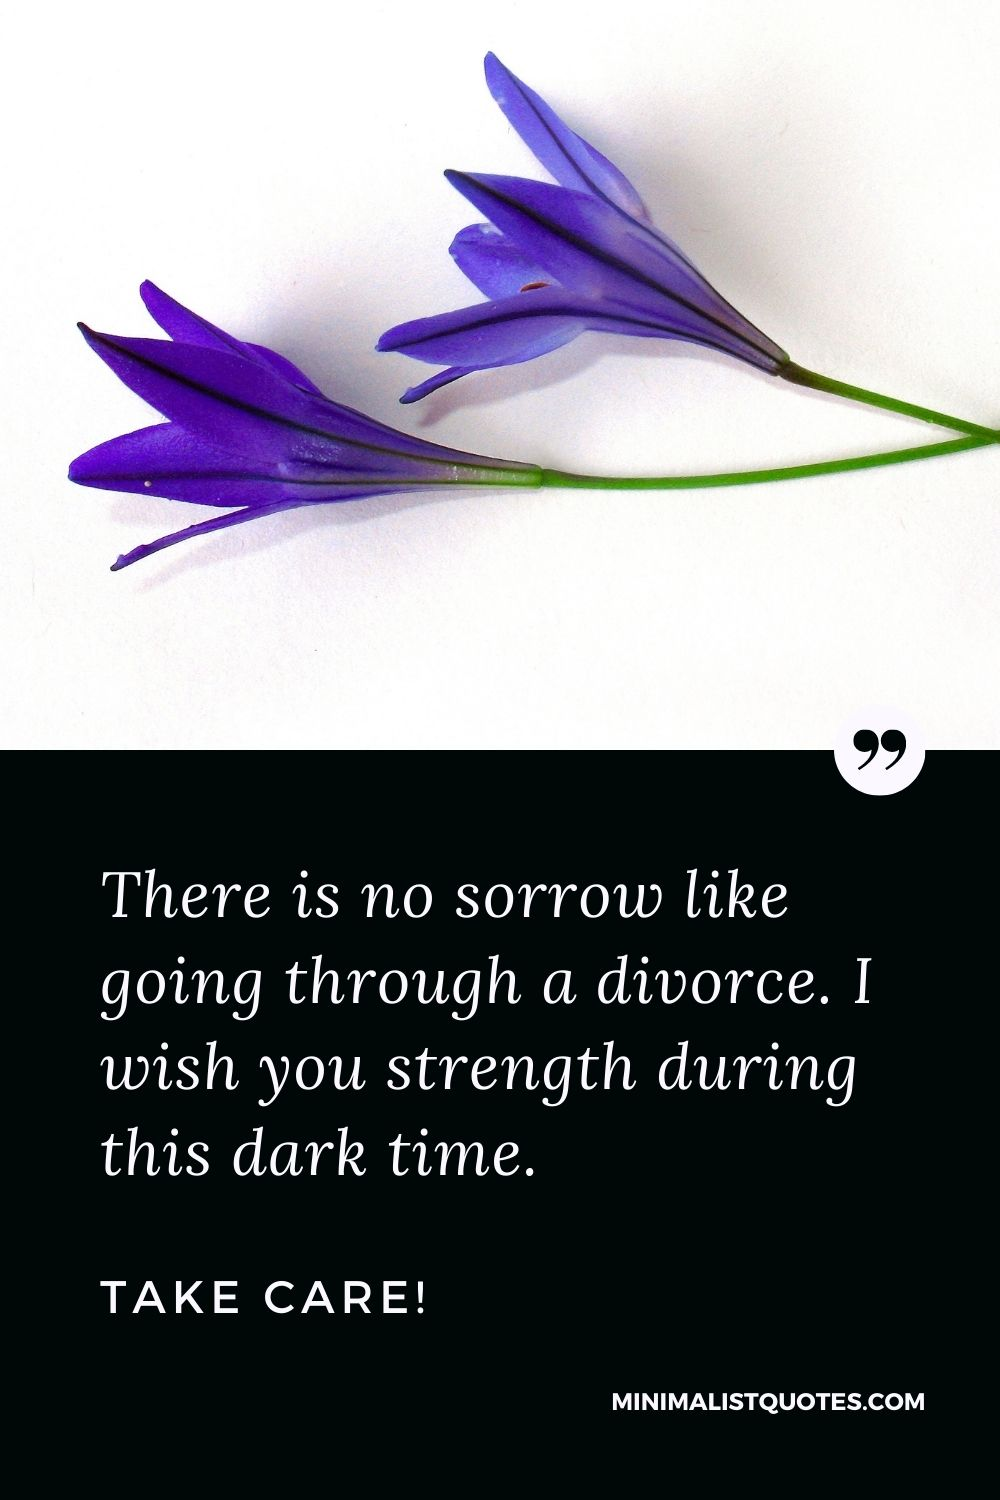 Divorce Quote, Sympathy & Message With Image: There is no sorrow like going through a divorce. I wish you strength during this dark time. Take Care!